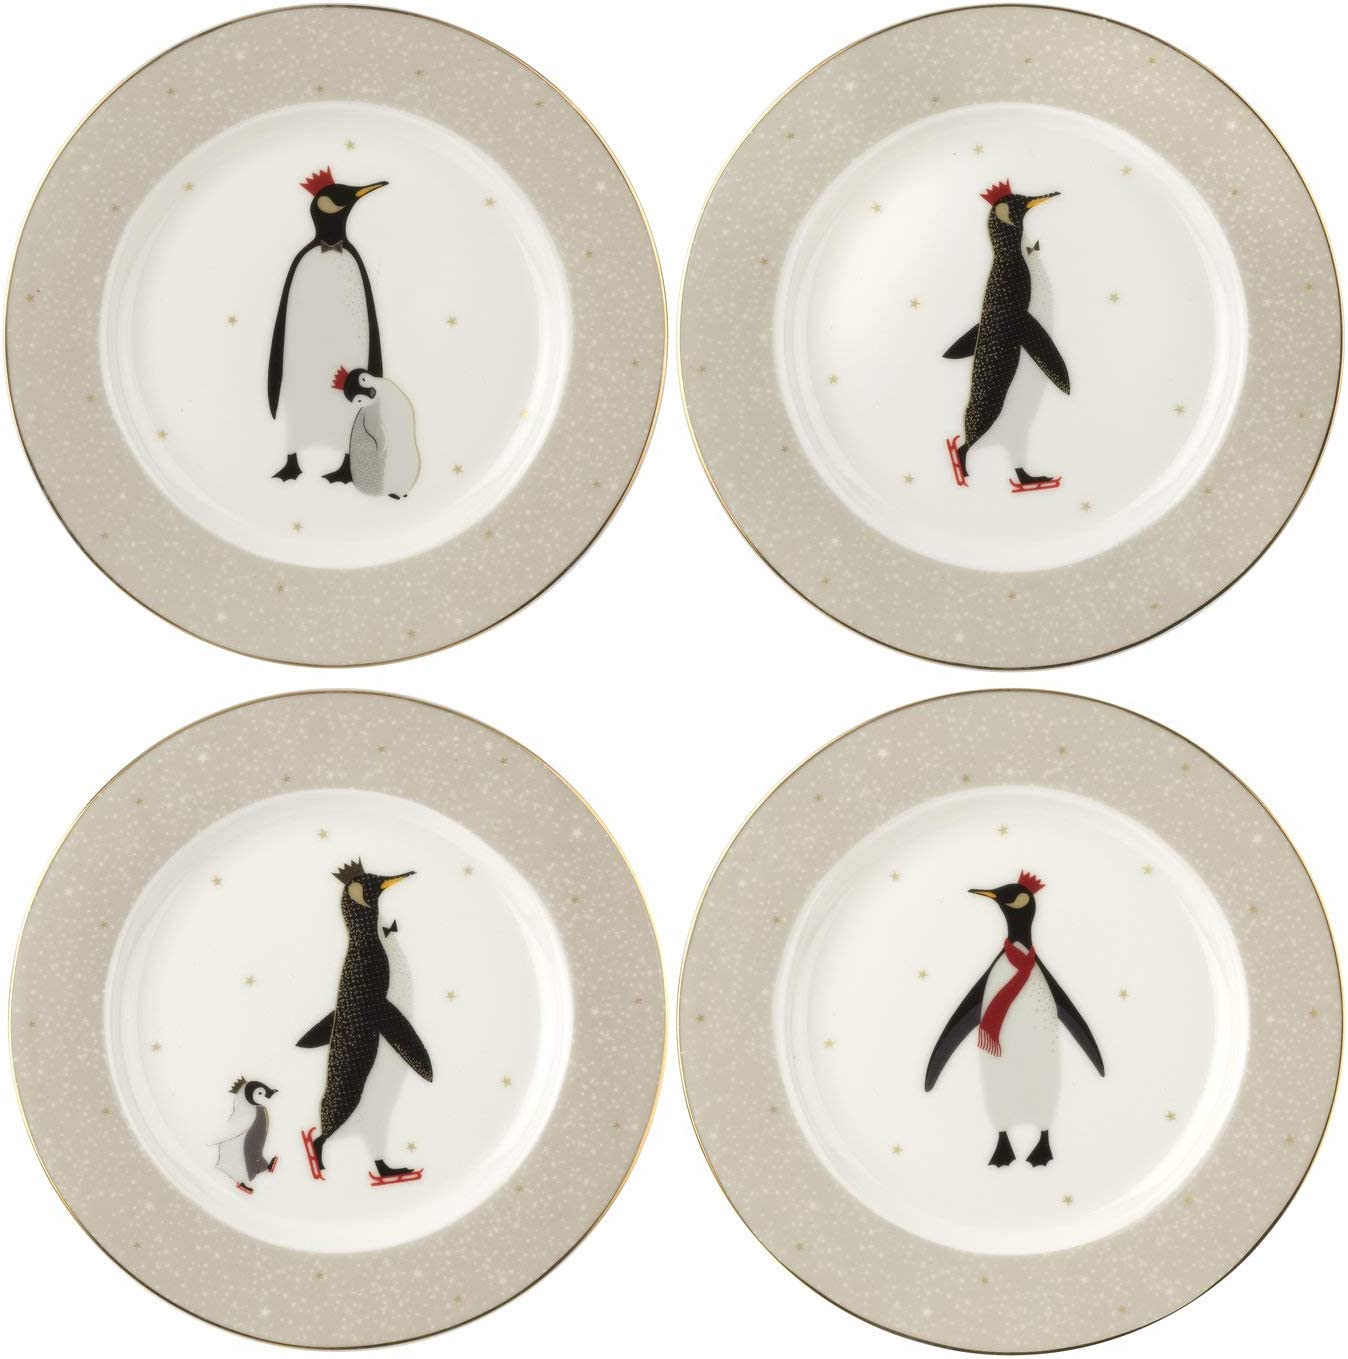 Portmeirion Home & Gifts Cake Plates S/4 Boxed Set, Porcelain